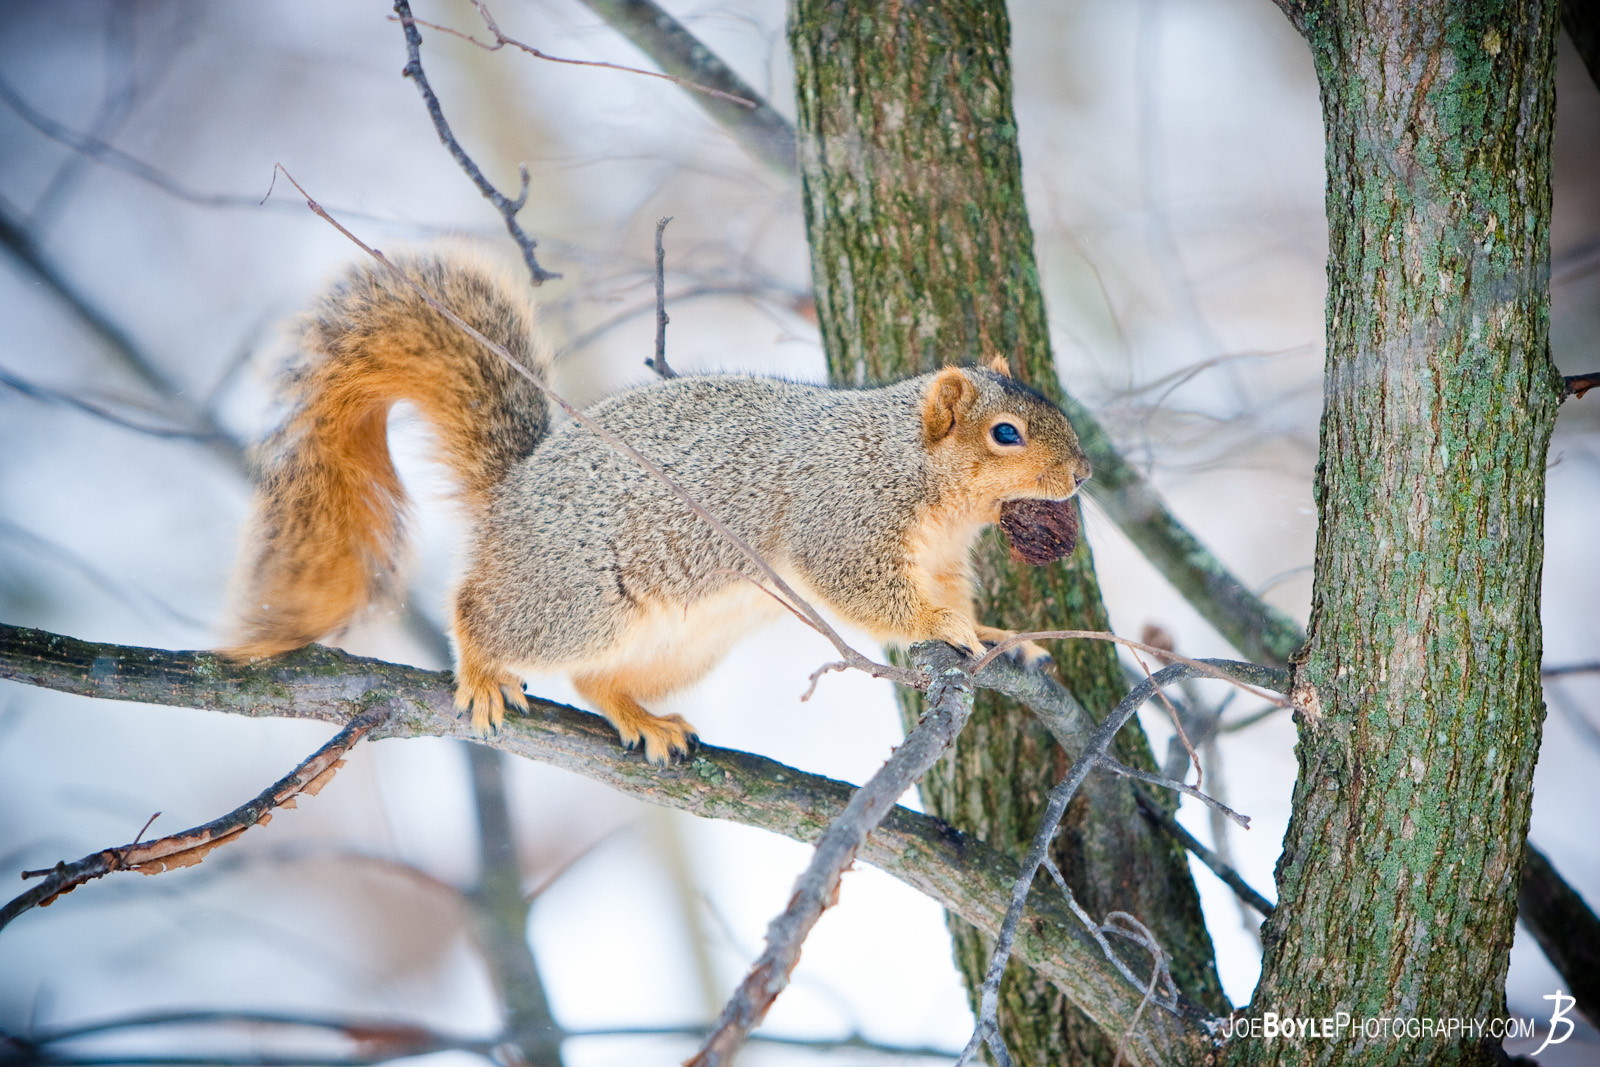 I captured a photo of this squirrel on a nice snowy day as I was hiking through the Cleveland Metroparks.